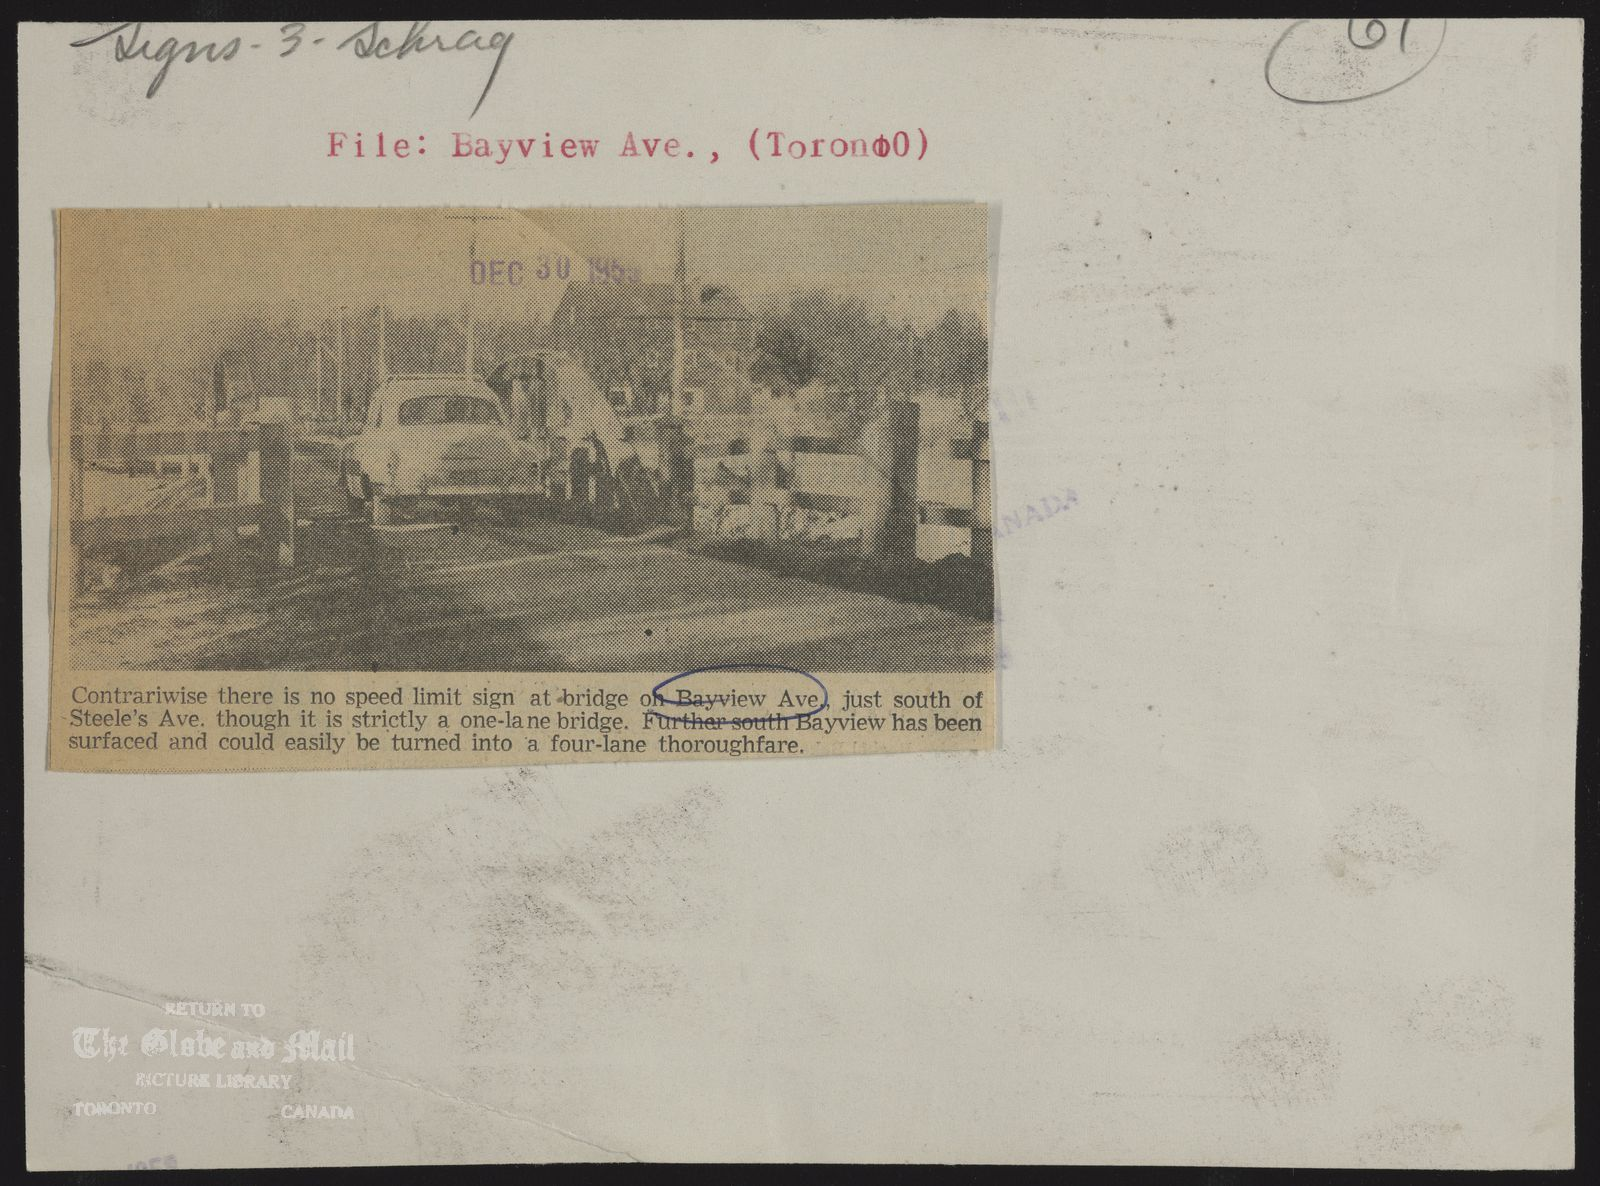 The notes written and typed on the back of this photograph, from the time it was printed, are as follows: Bayview Ave, (Toronto ) Contrariwise there is no speed limit sign at bridge on Bayview Ave, just south of Steele's Ave. though it is strictly a one lane bridge. Further south Bayview has been Surfaced and could easily be turned into a four-lane thoroughfare. 1955. Toronto; Bayview Avenue, one-lane bridge south of Steeles. Accession#: 55360-4December 30, 1955,Lex Schrag